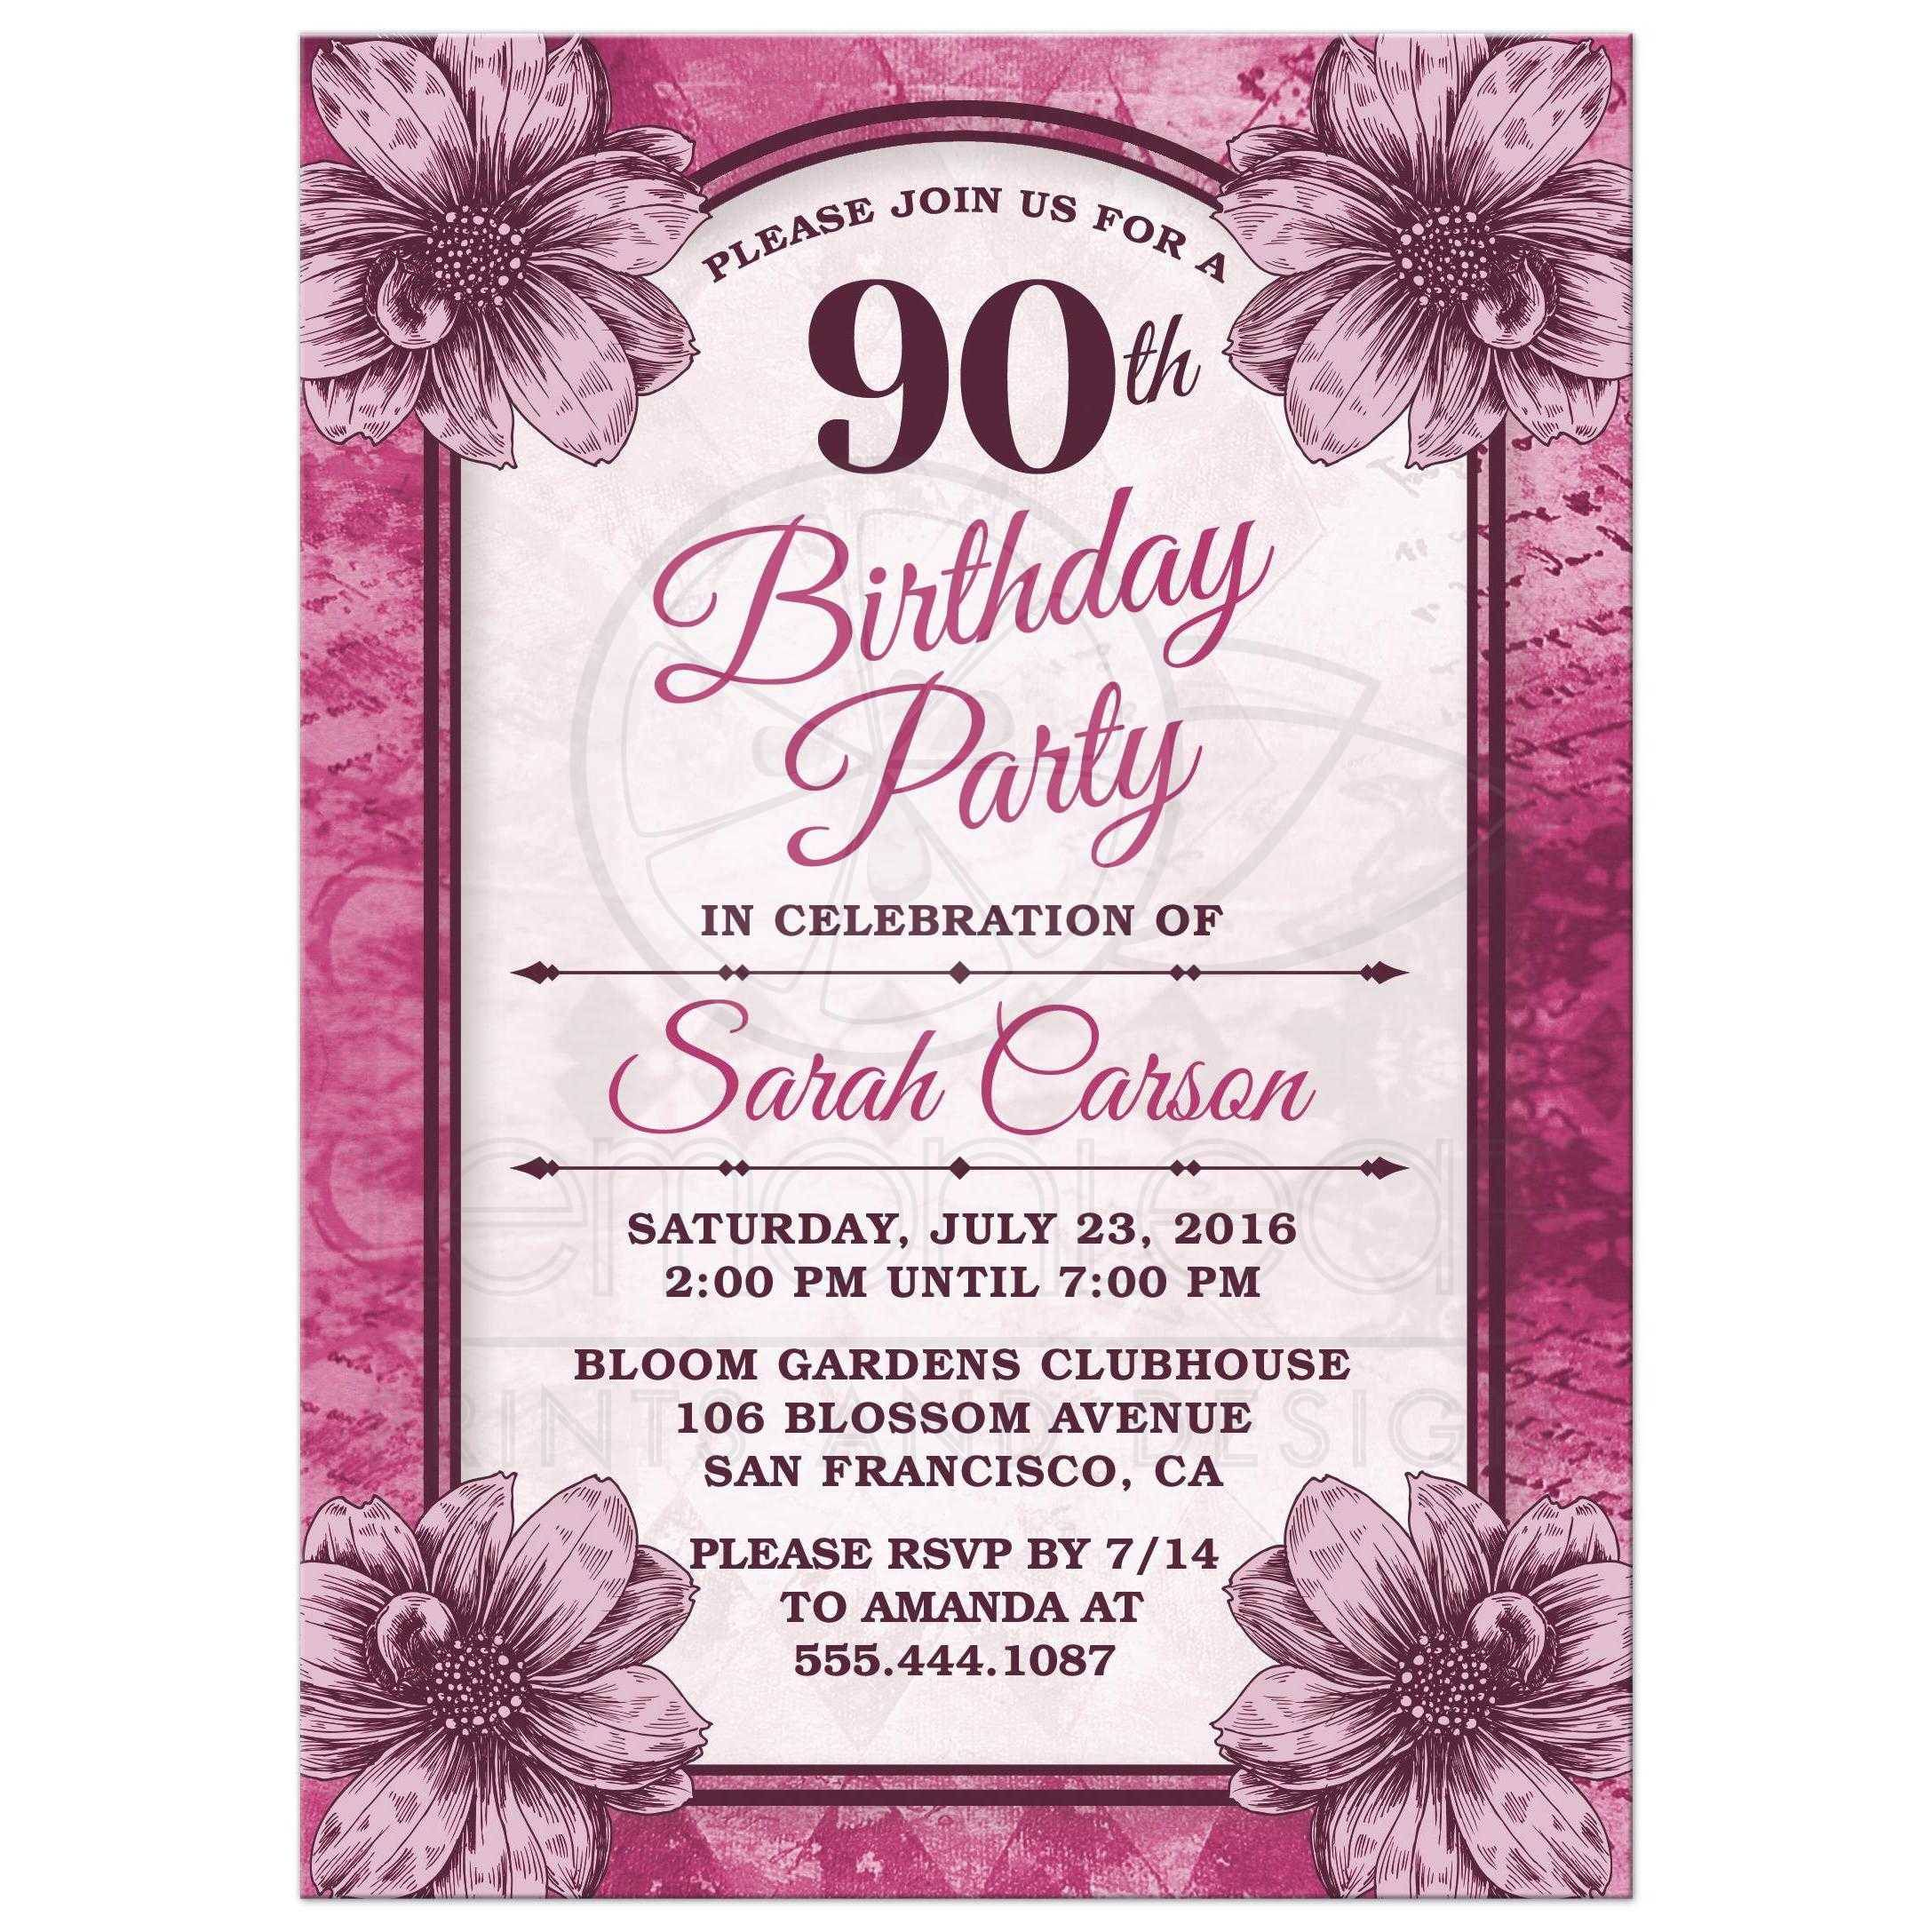 90th Birthday Party Invitations Templates Free  Birthday Invitations Templates Word